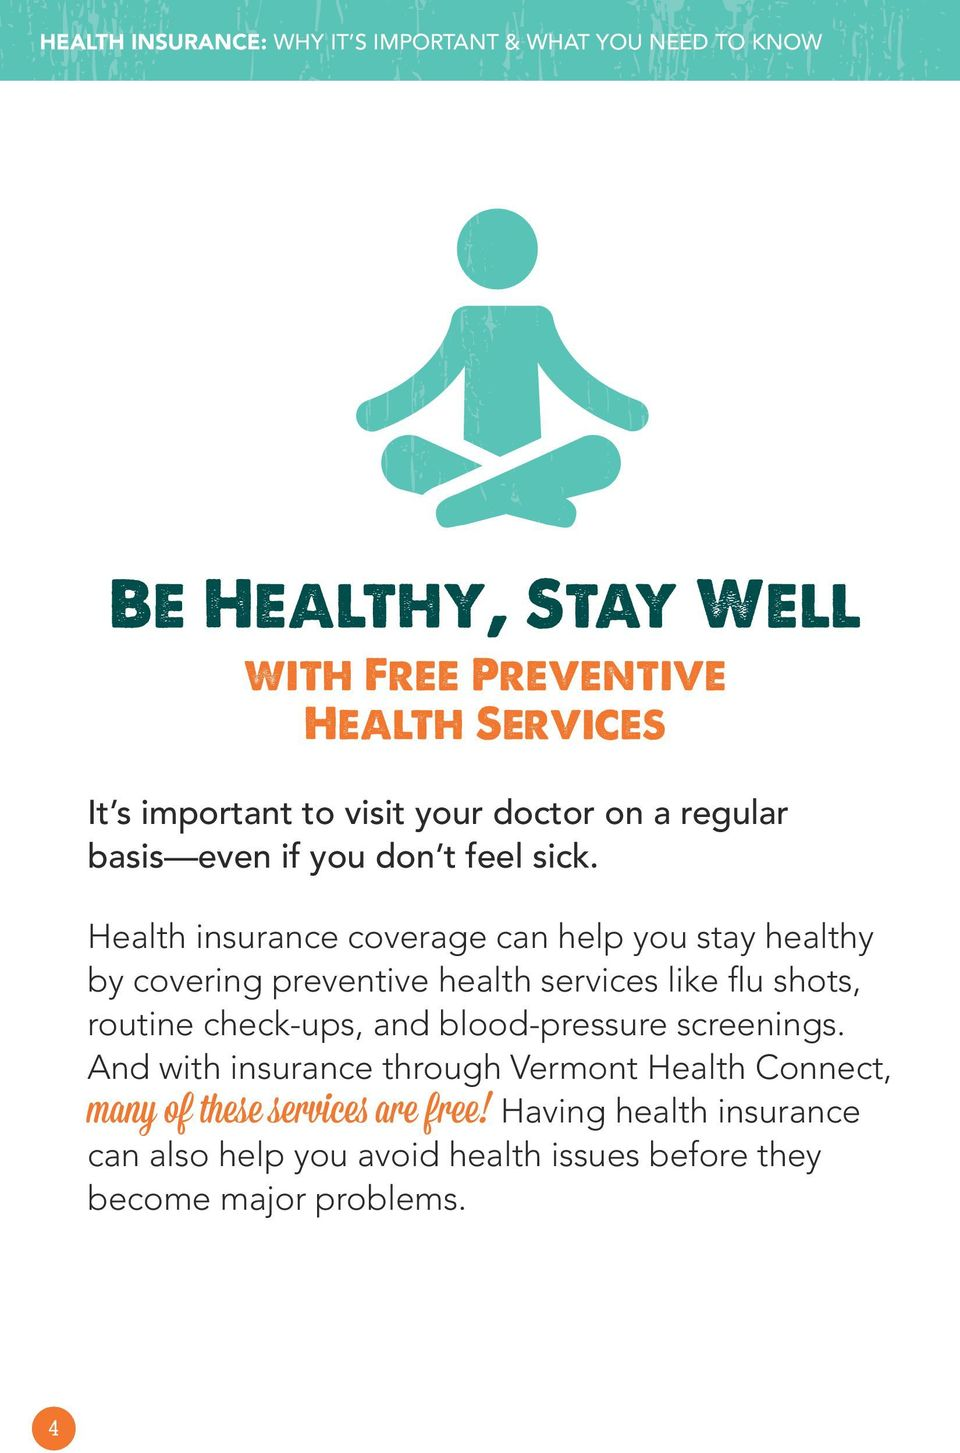 Health insurance coverage can help you stay healthy by covering preventive health services like flu shots, routine check-ups, and